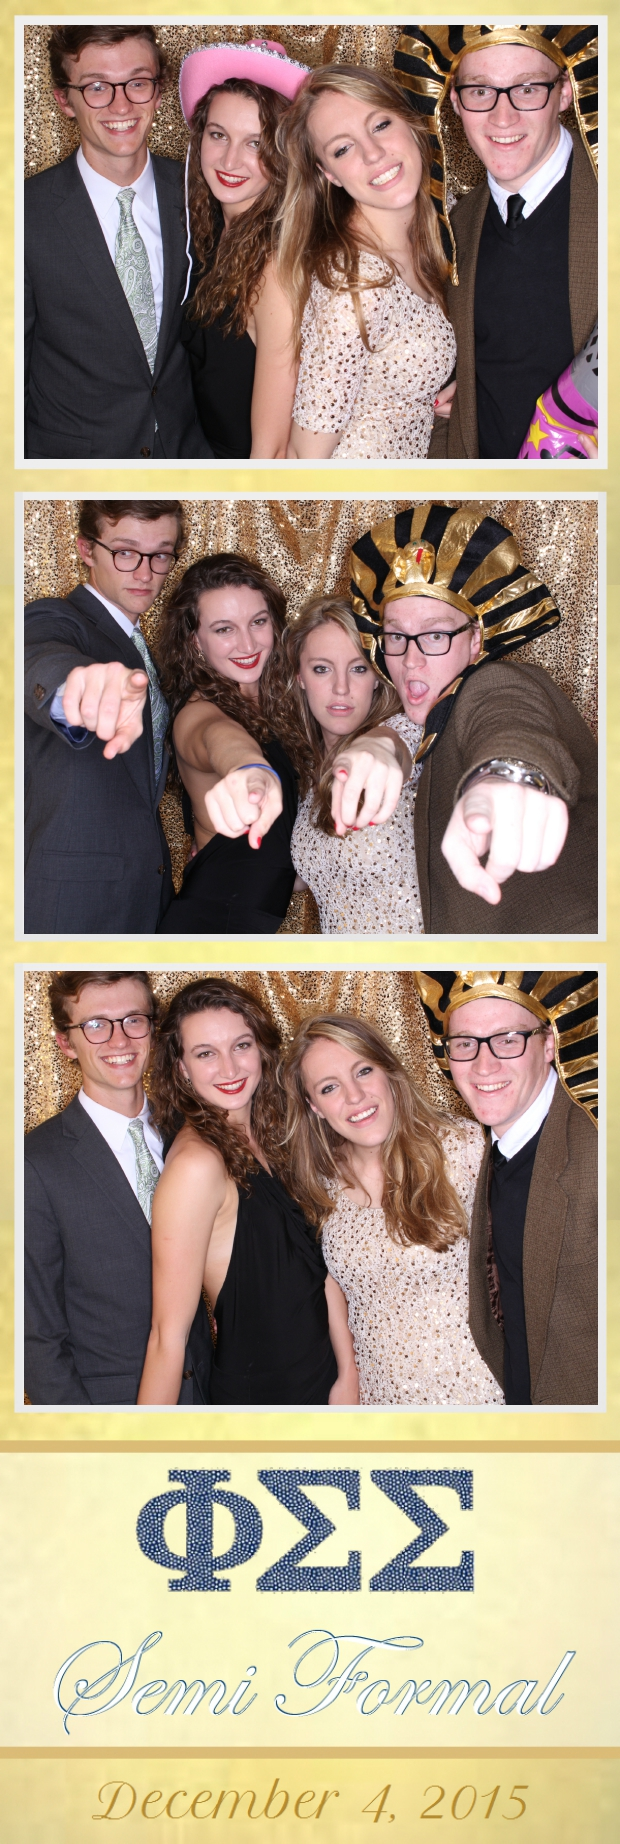 Guest House Events Photo Booth Phi Sigma Sigma Semi Formal (24).jpg